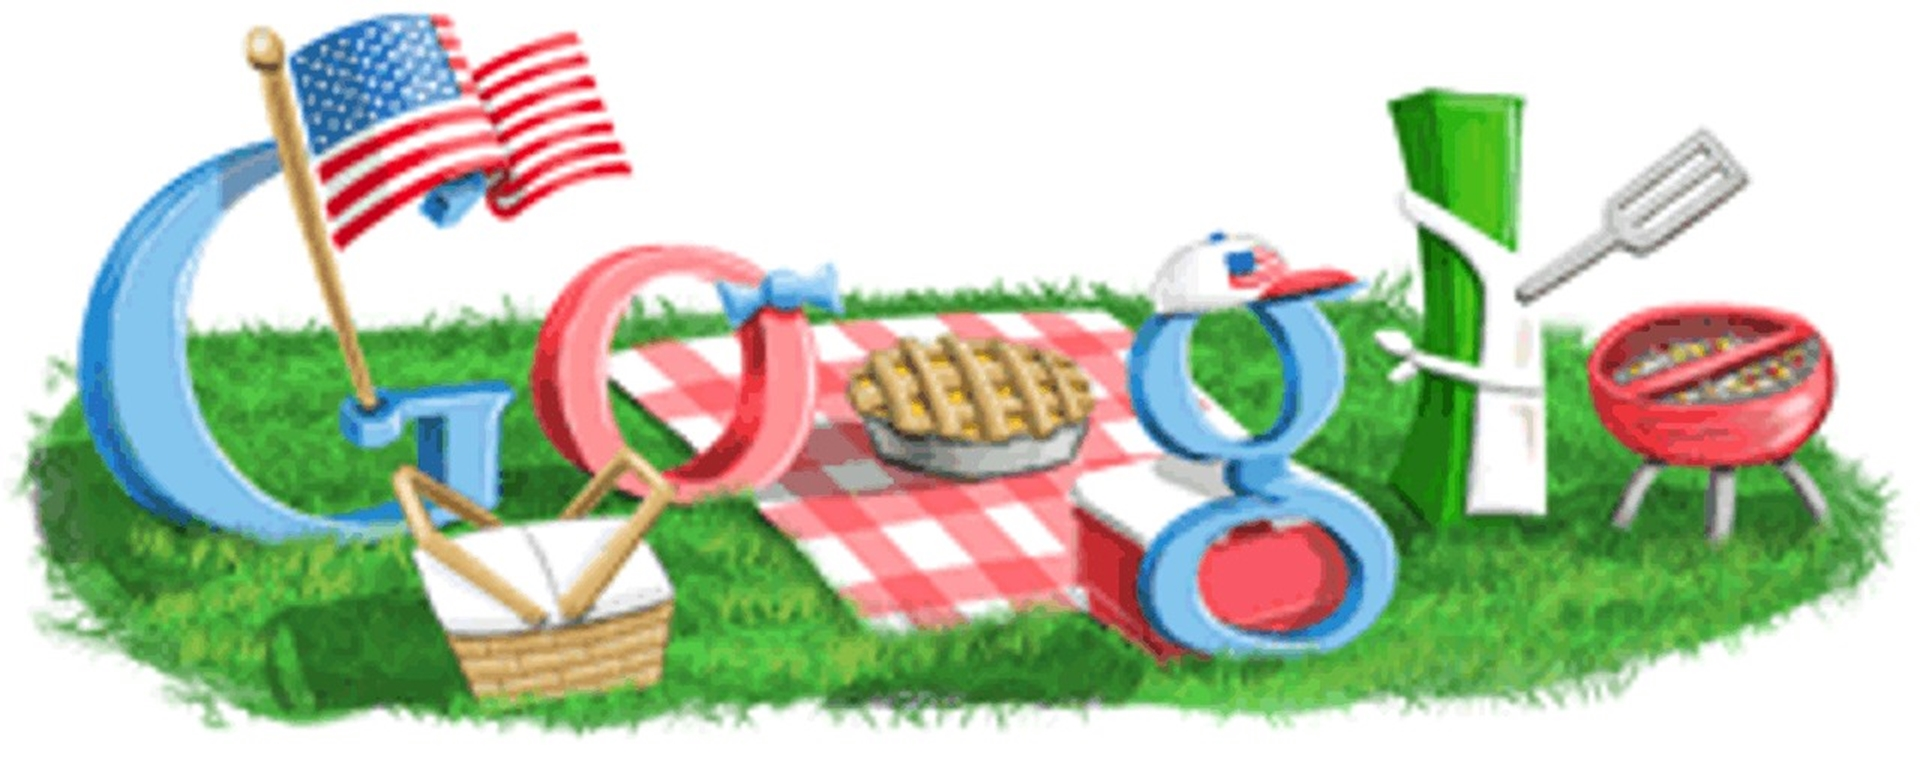 4th of July Google Doodle 2009